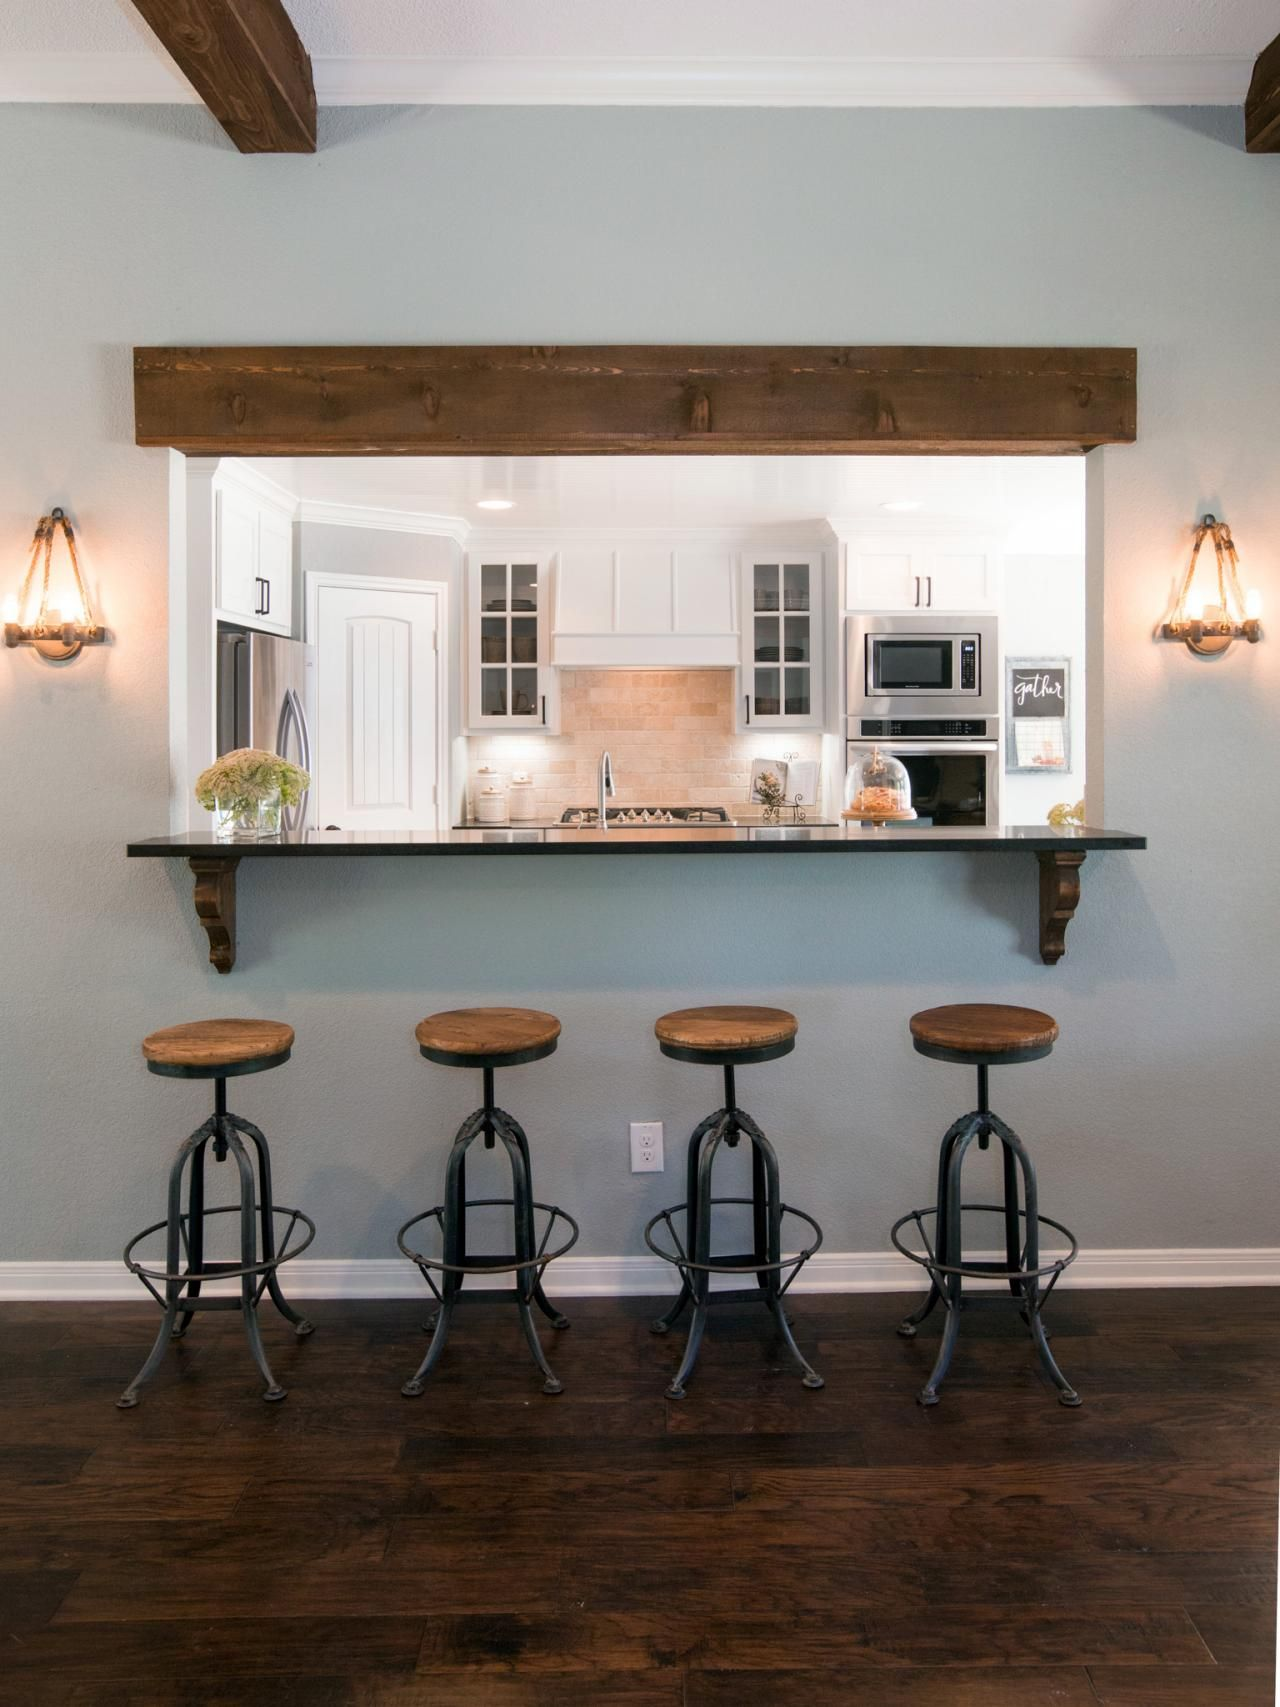 Photos  HGTVs Fixer Upper With Chip and Joanna Gaines  HGTV  Dream Home in 2019  Kitchen